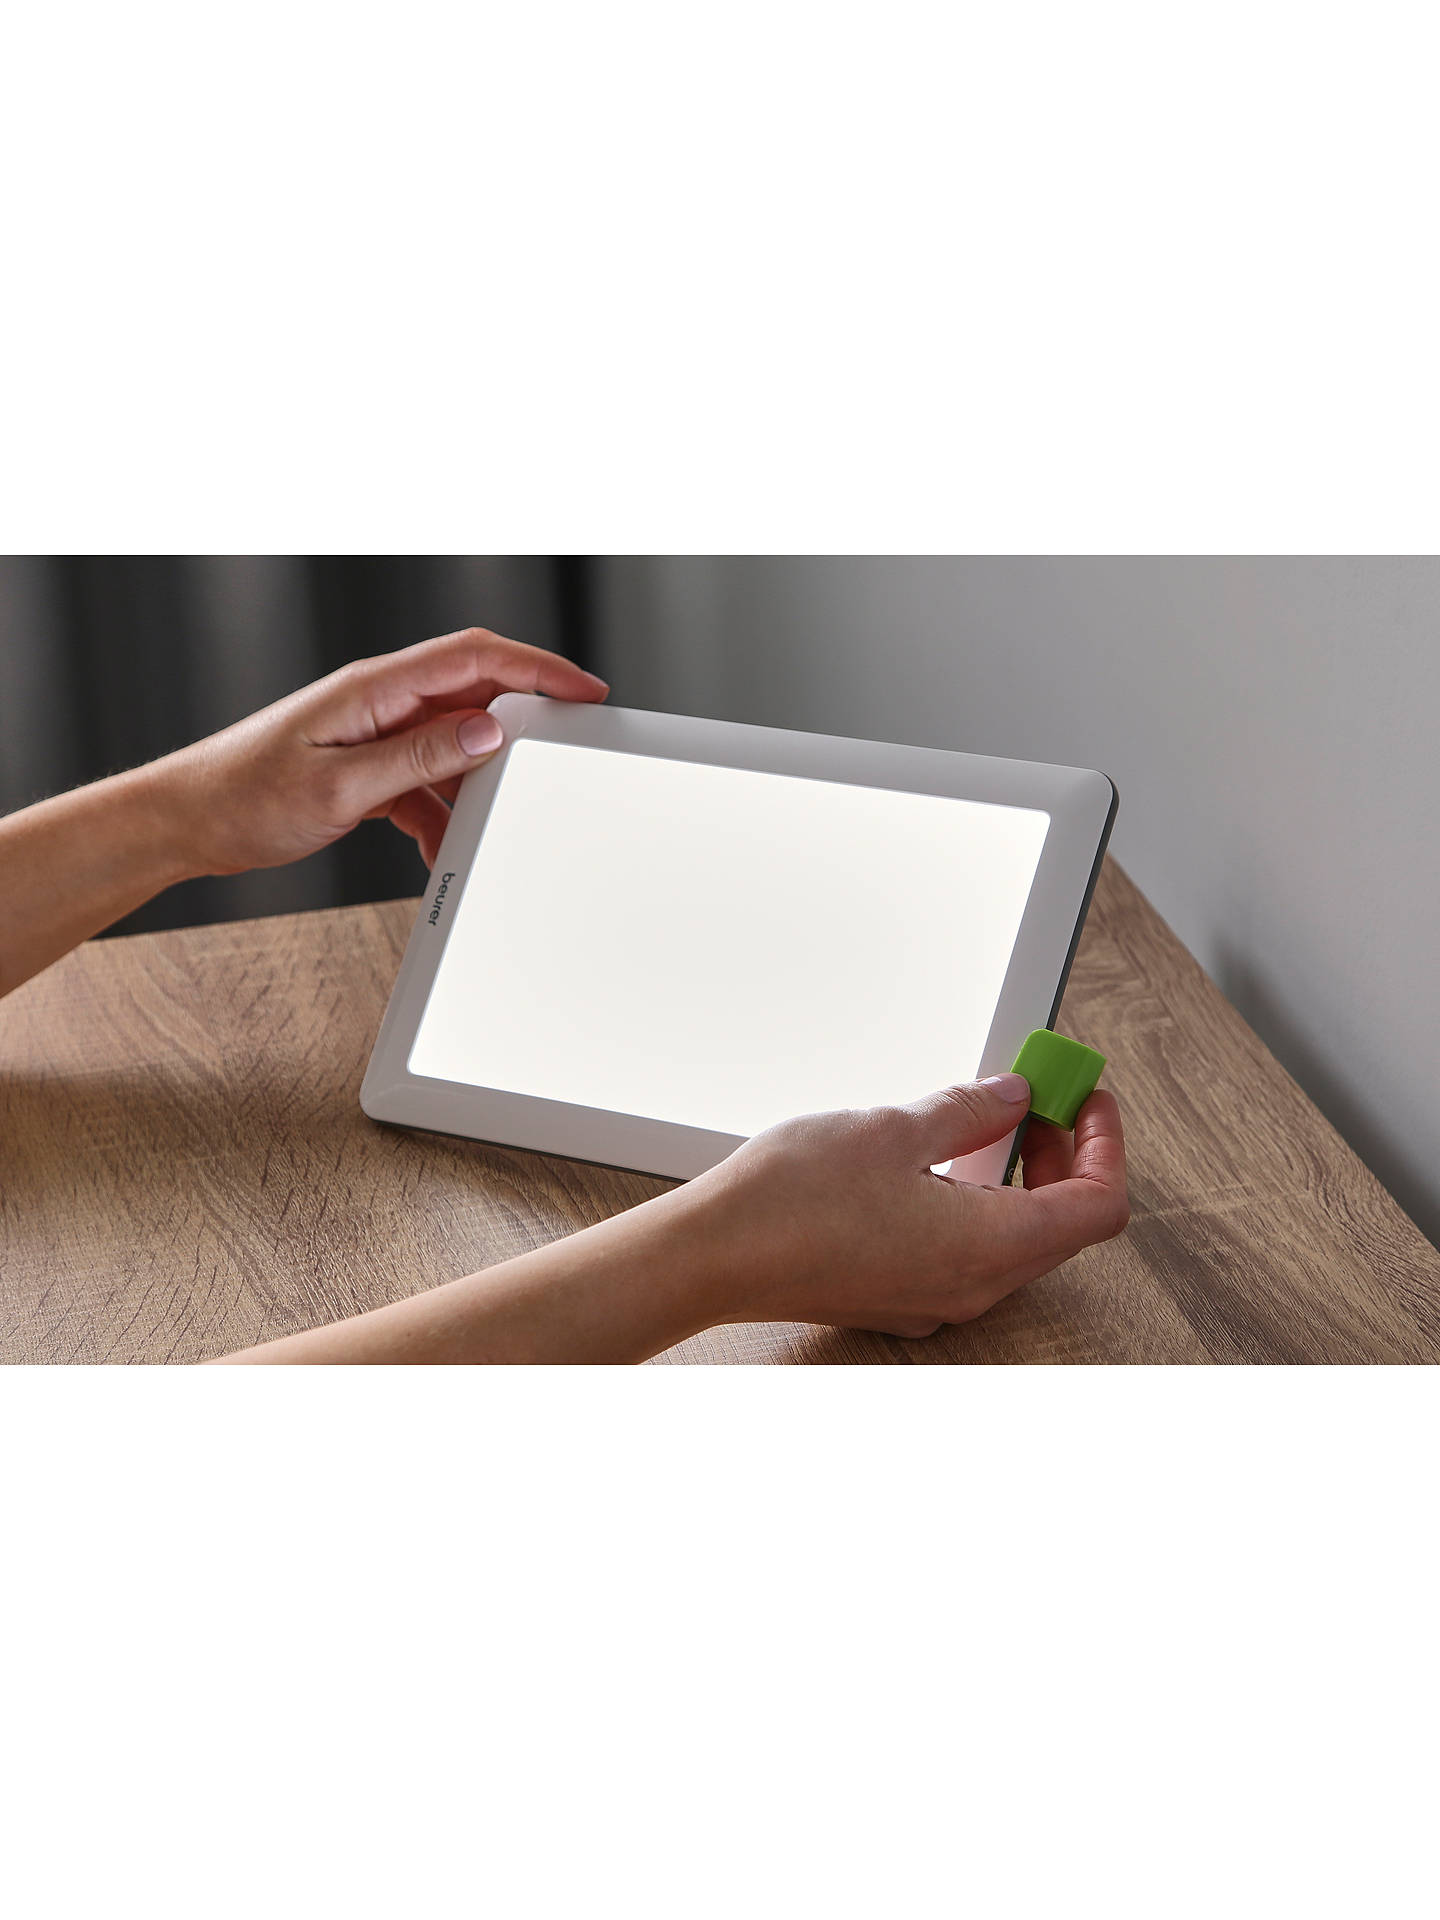 BuyBeurer TL 50 Compact Wake up to Daylight SAD Light, White Online at johnlewis.com